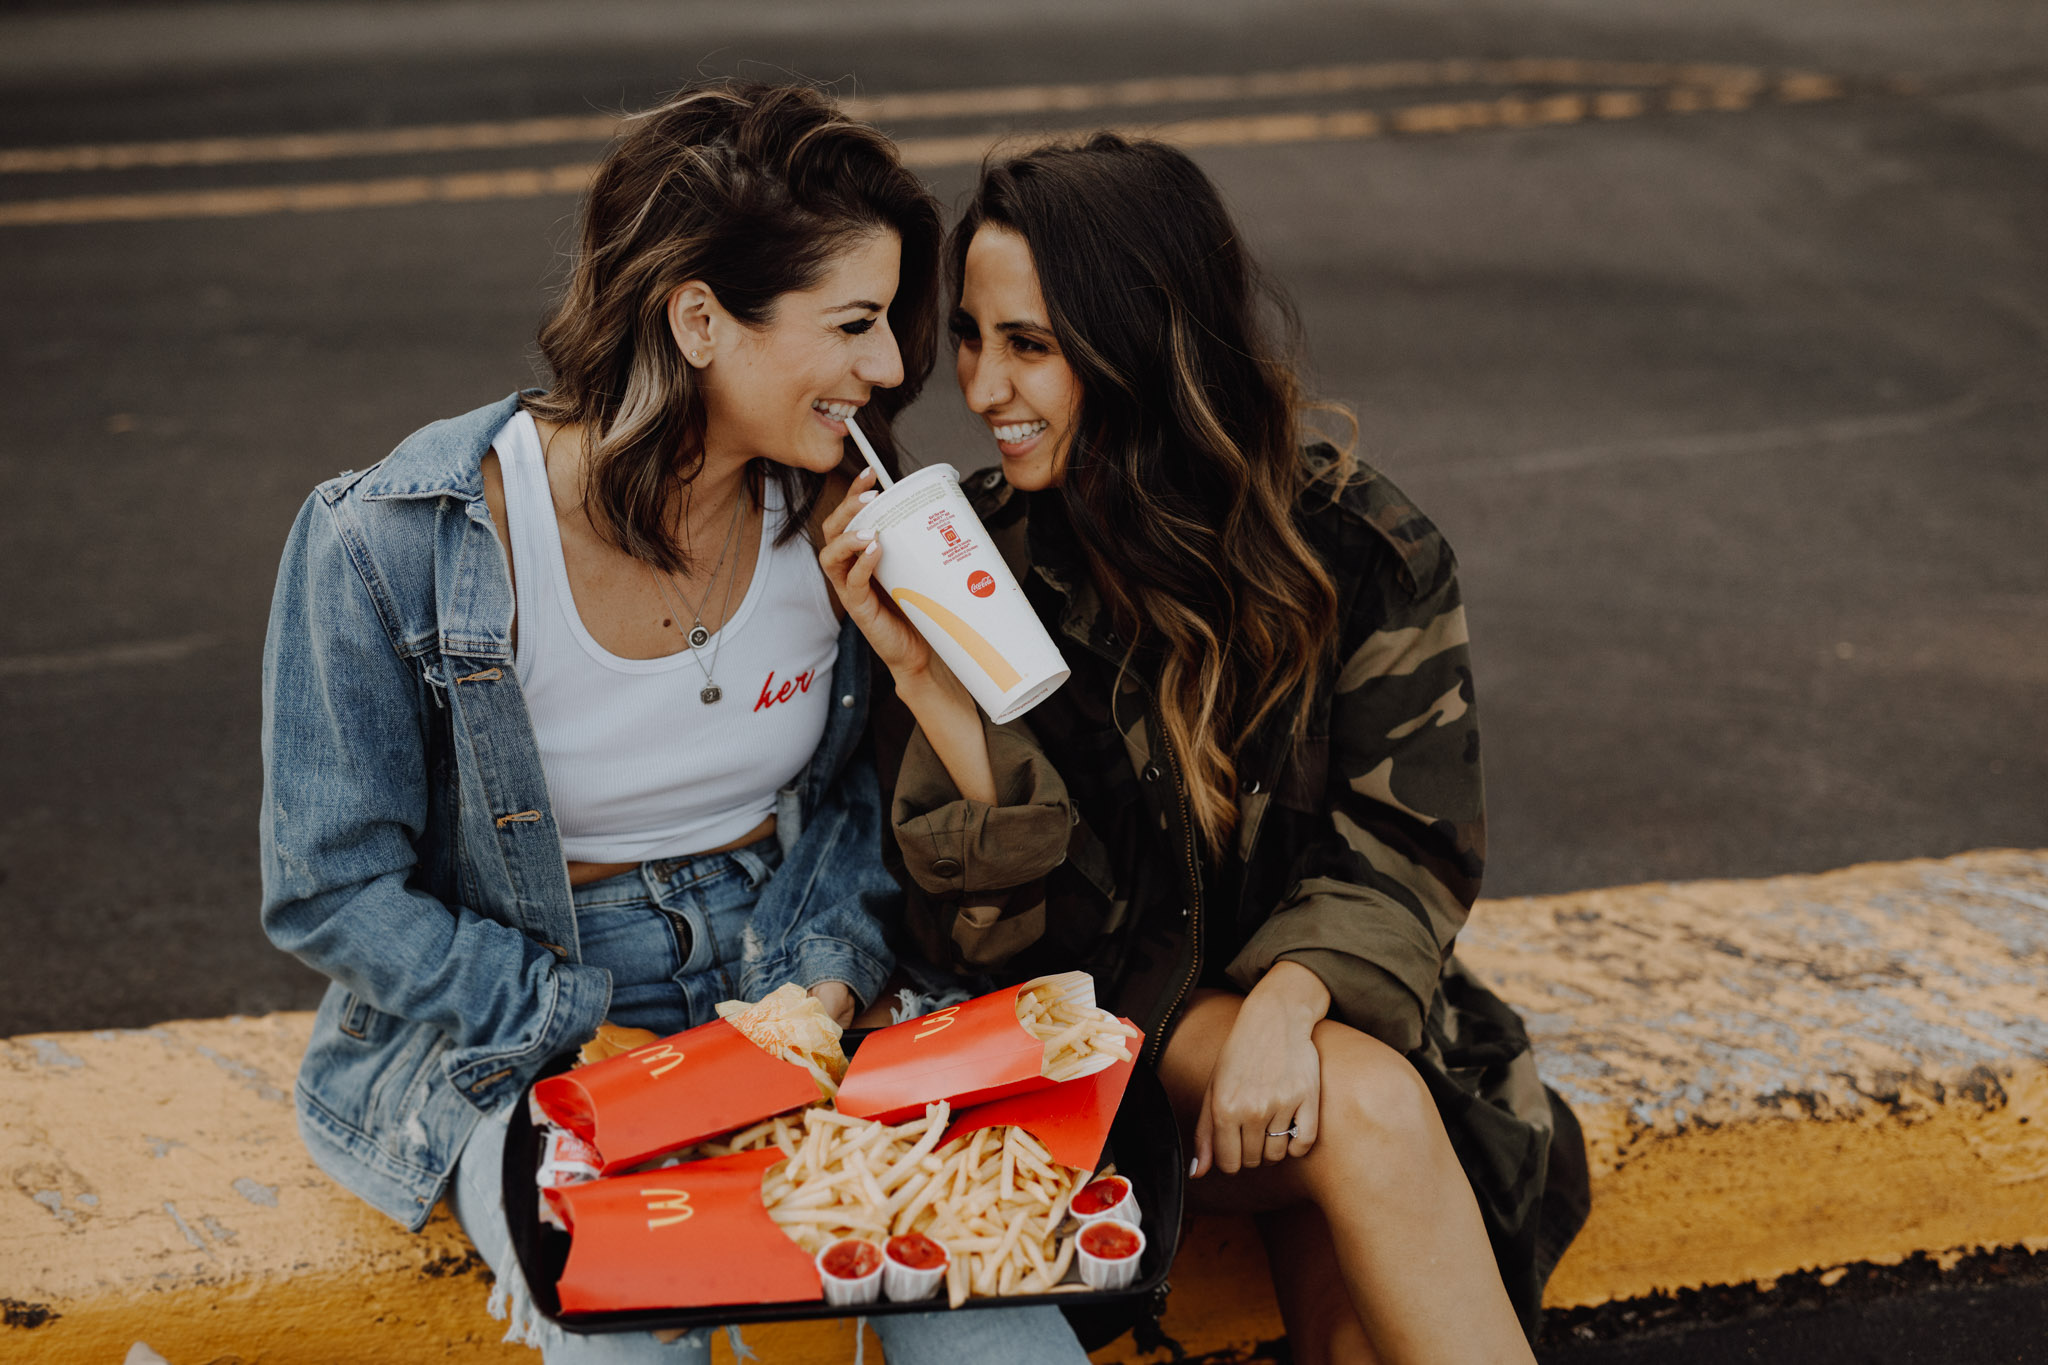 Mcdonalds engagement session - a pile of fries, a soft drink and women